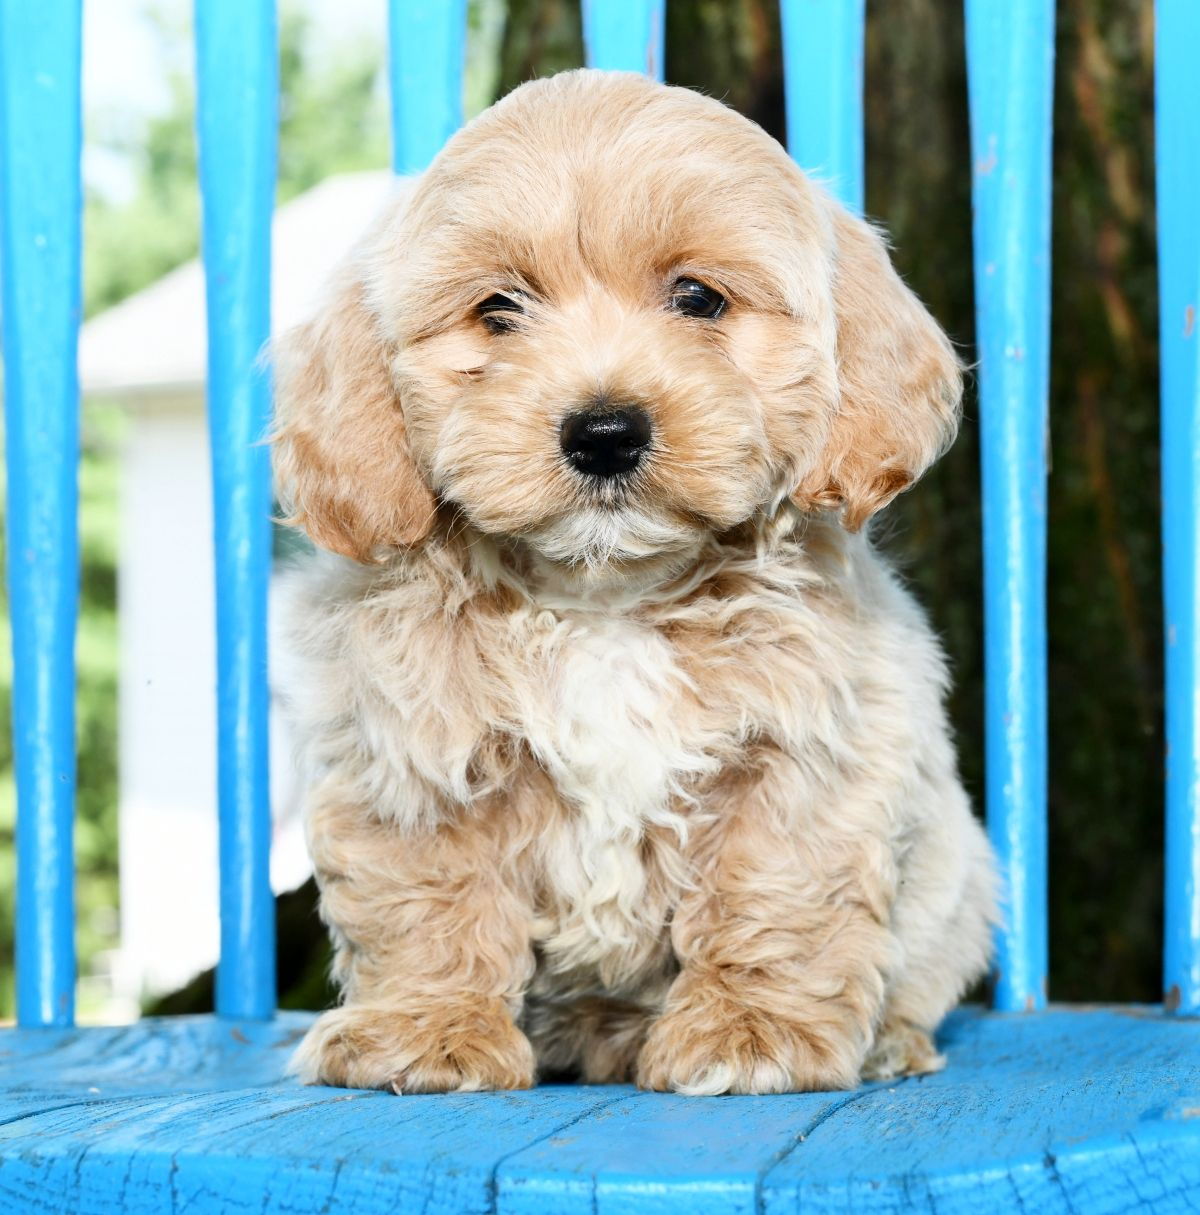 Smart Cockapoo Cockapoo Puppies Lancaster Puppies Cockapoo Puppies For Sale